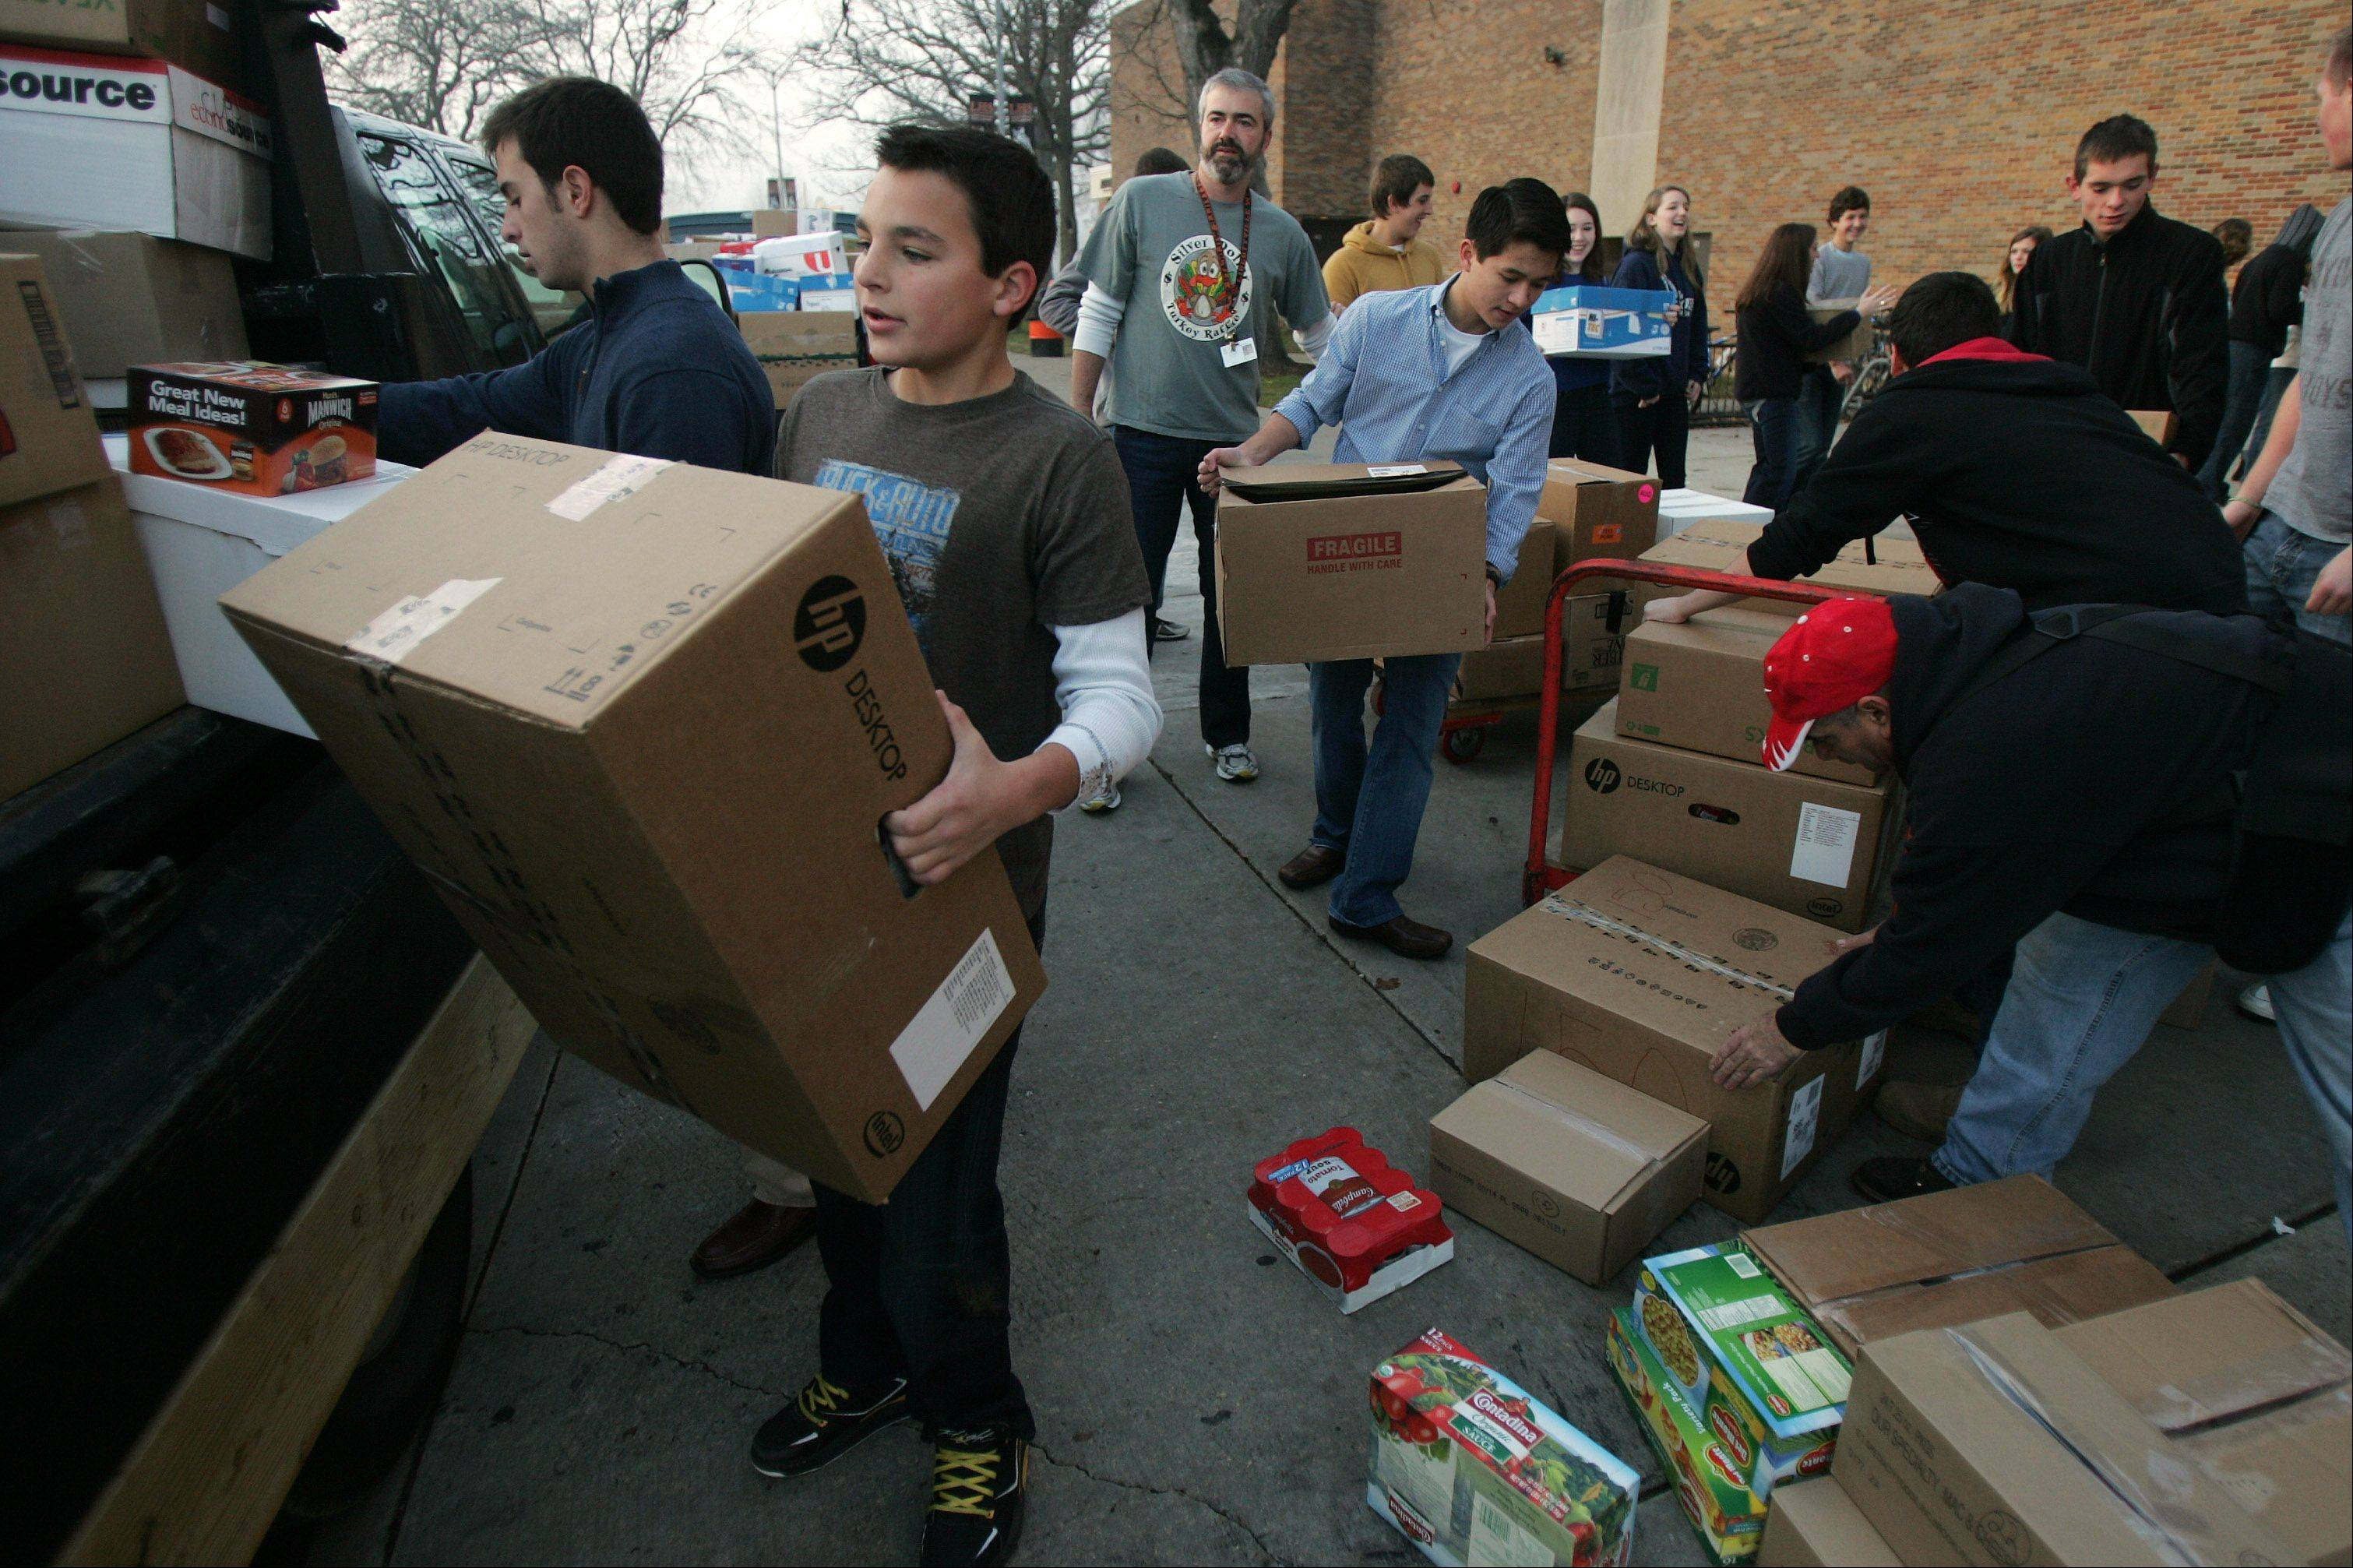 Libertyville High School freshman Nick Kraus, left, joins other students and teachers to pack up boxes of donated food Wednesday. Students collected more than 10,000 items to donate to the Libertyville Township food pantry.